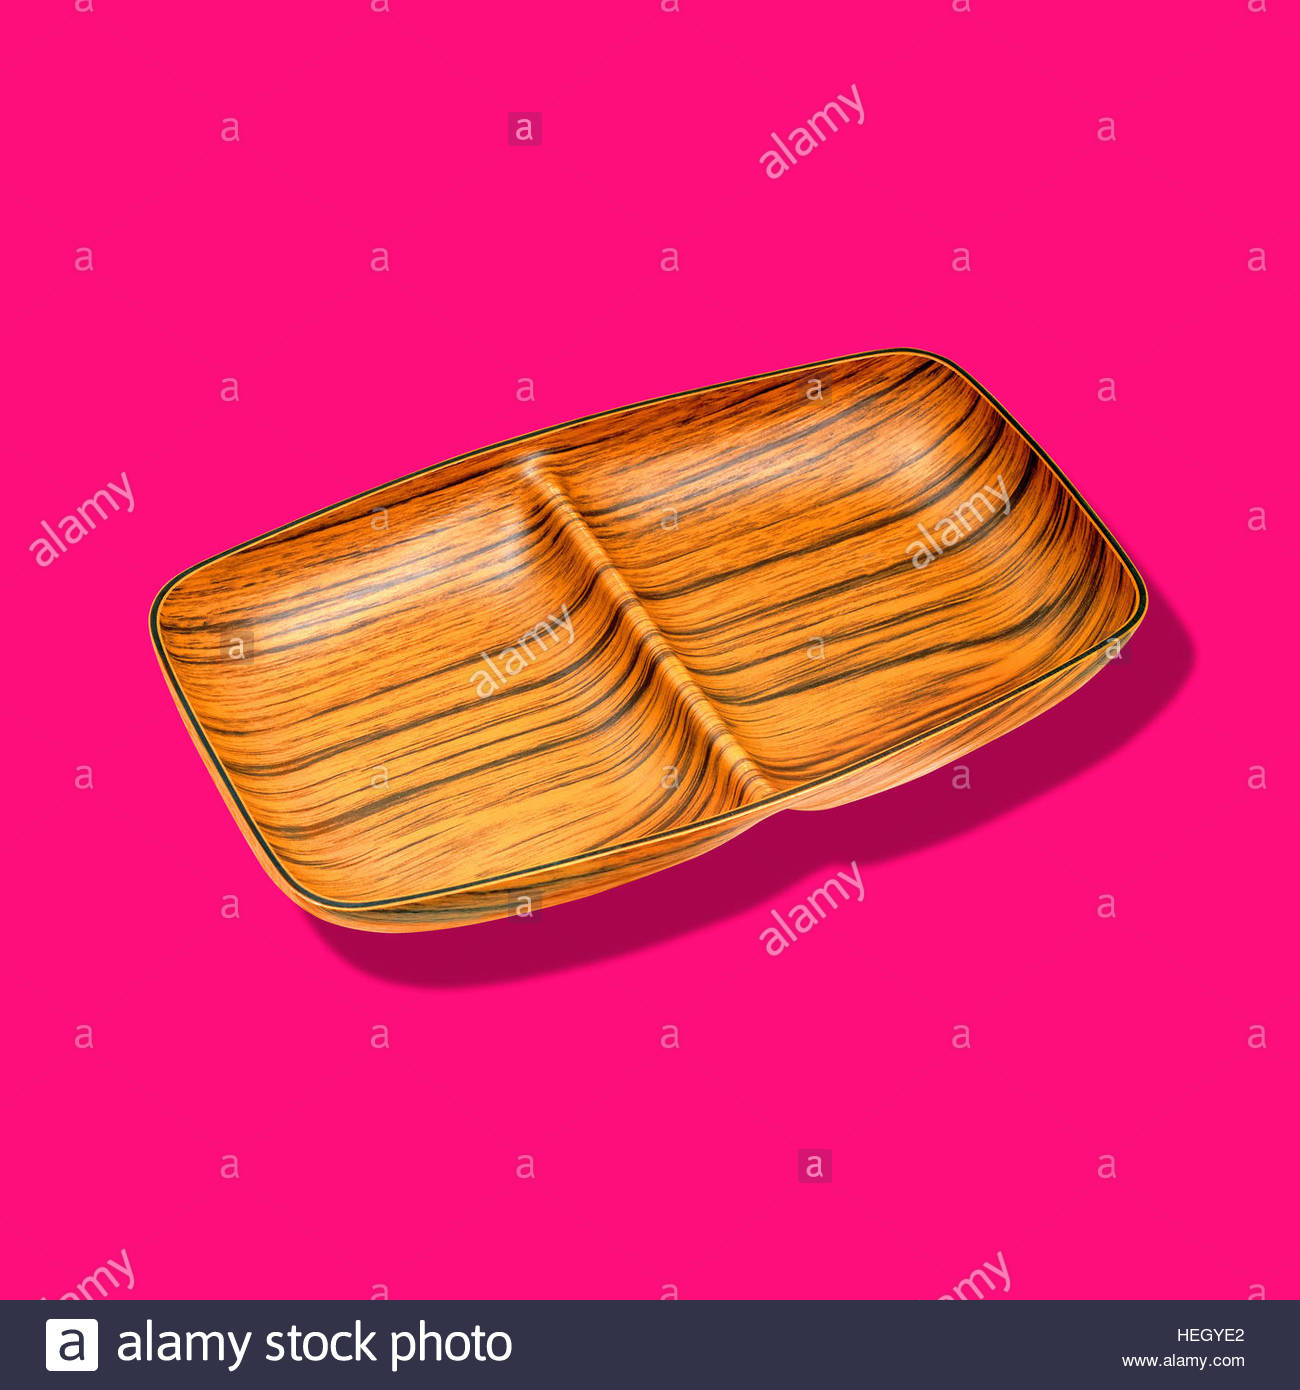 Wood effect formed dish tray plastic vintage food holder kitsch retro isolated mid century food on plain background - Stock Image